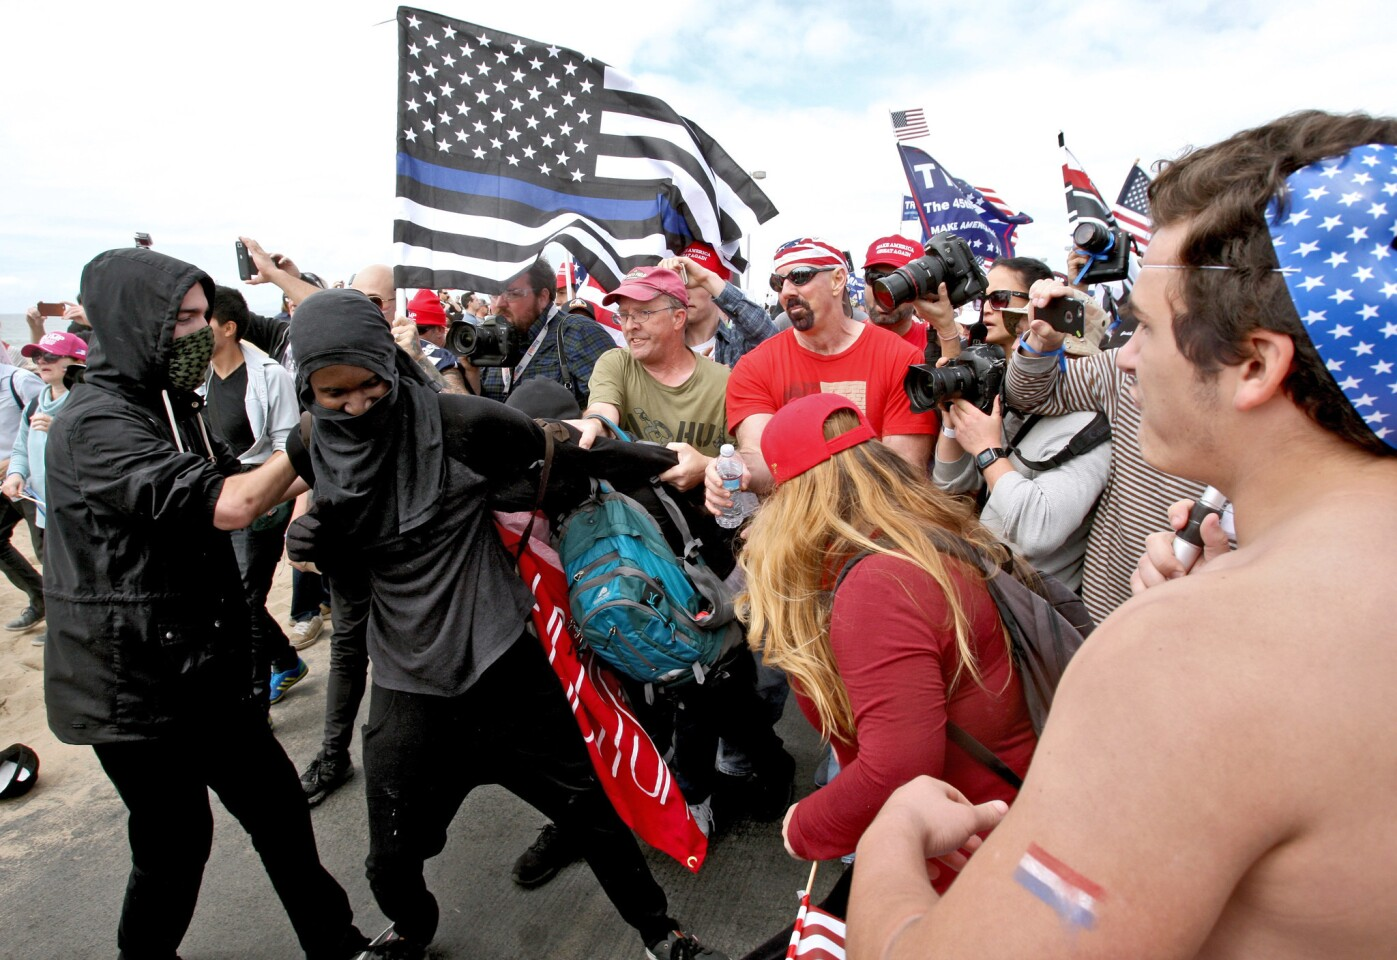 A protester is pulled by the Make America Great Again March crowd at Bolsa Chica State Beach in Huntington Beach on Saturday. The march was in support of President Trump.